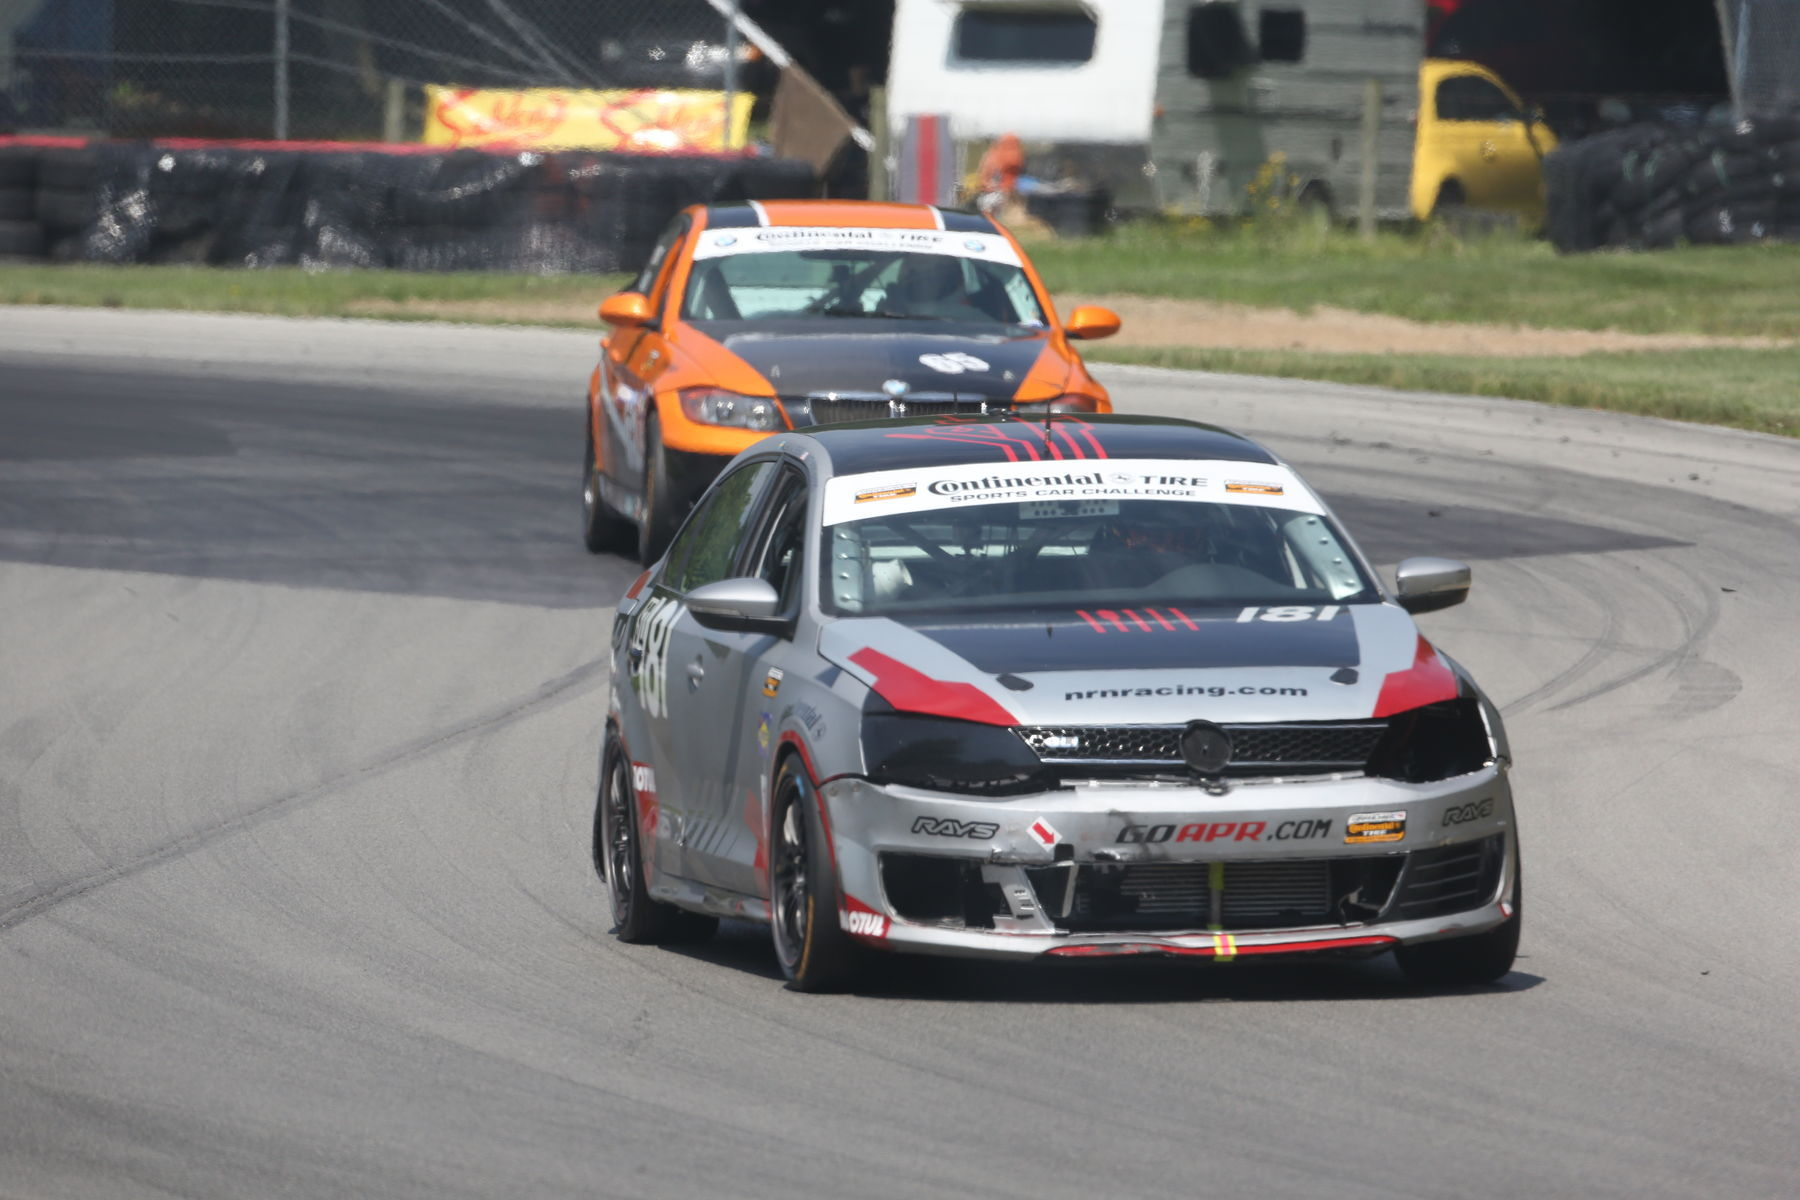 | The competition was building up, but their Continental Tires were always maintaining their grip